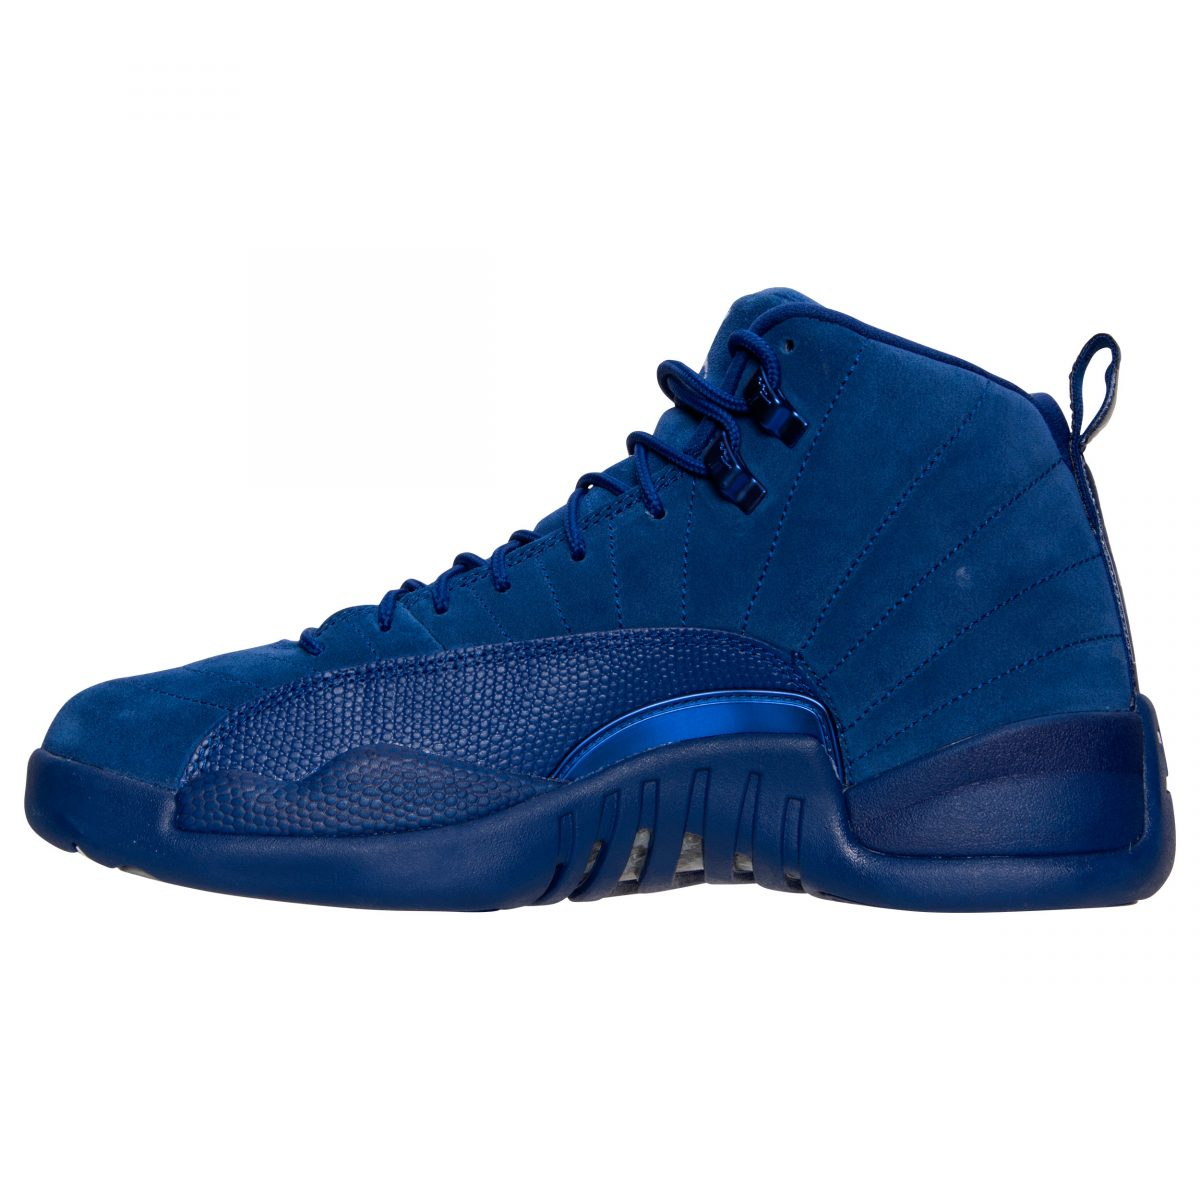 best service 9bd7a 45743 spain jordan 12 retro upcoming 29f60 2f0d6